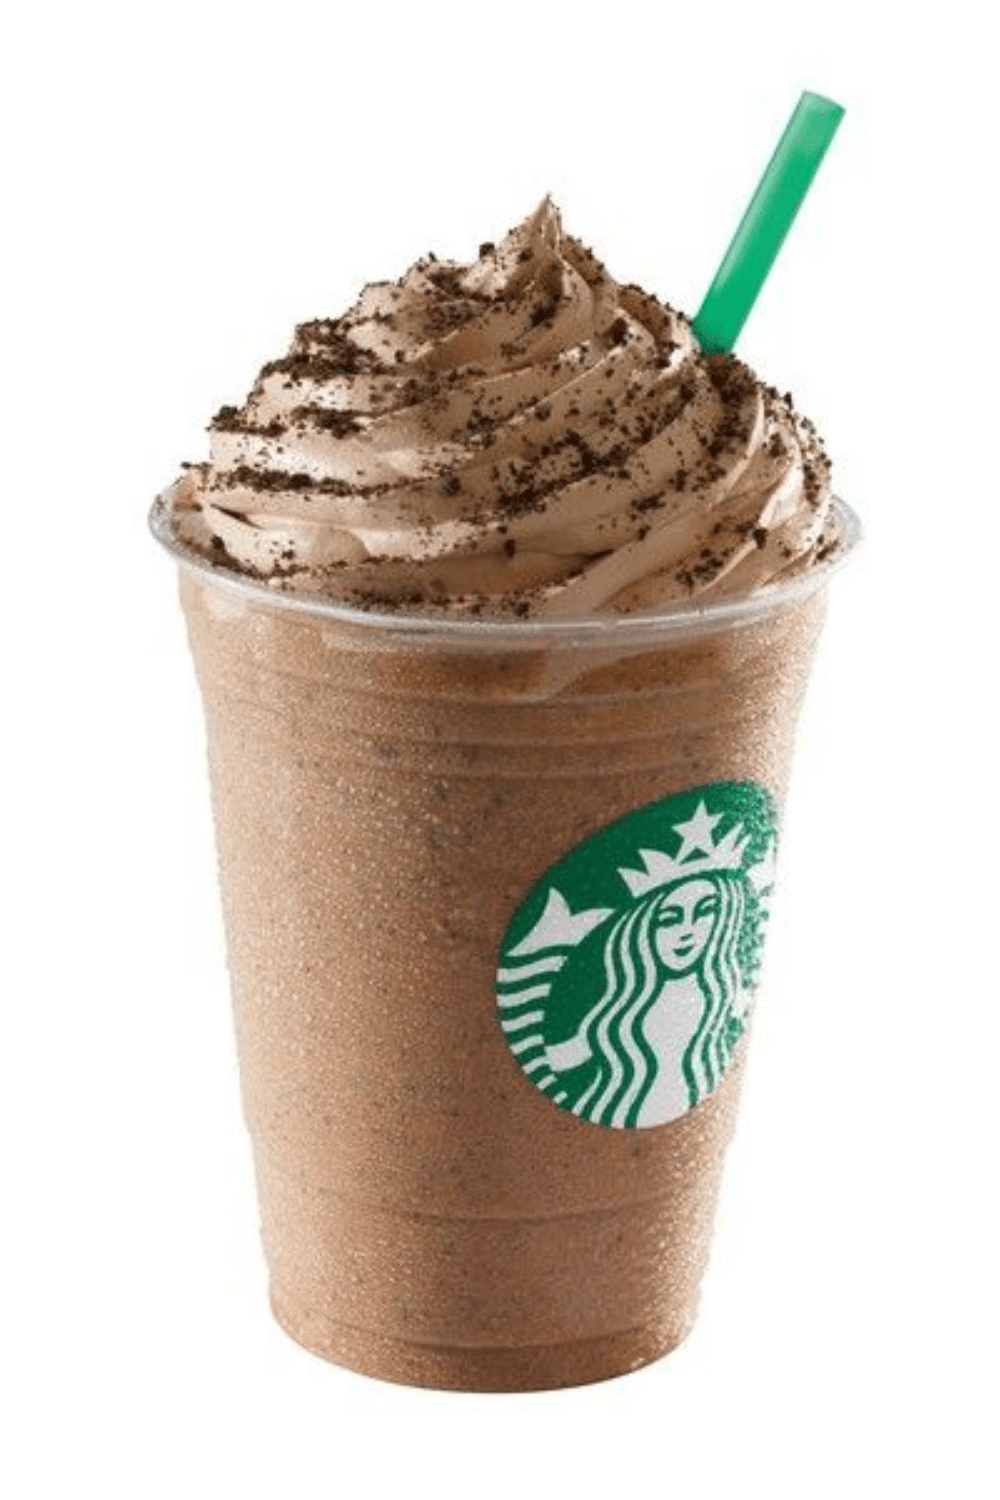 What is a frappuccino?